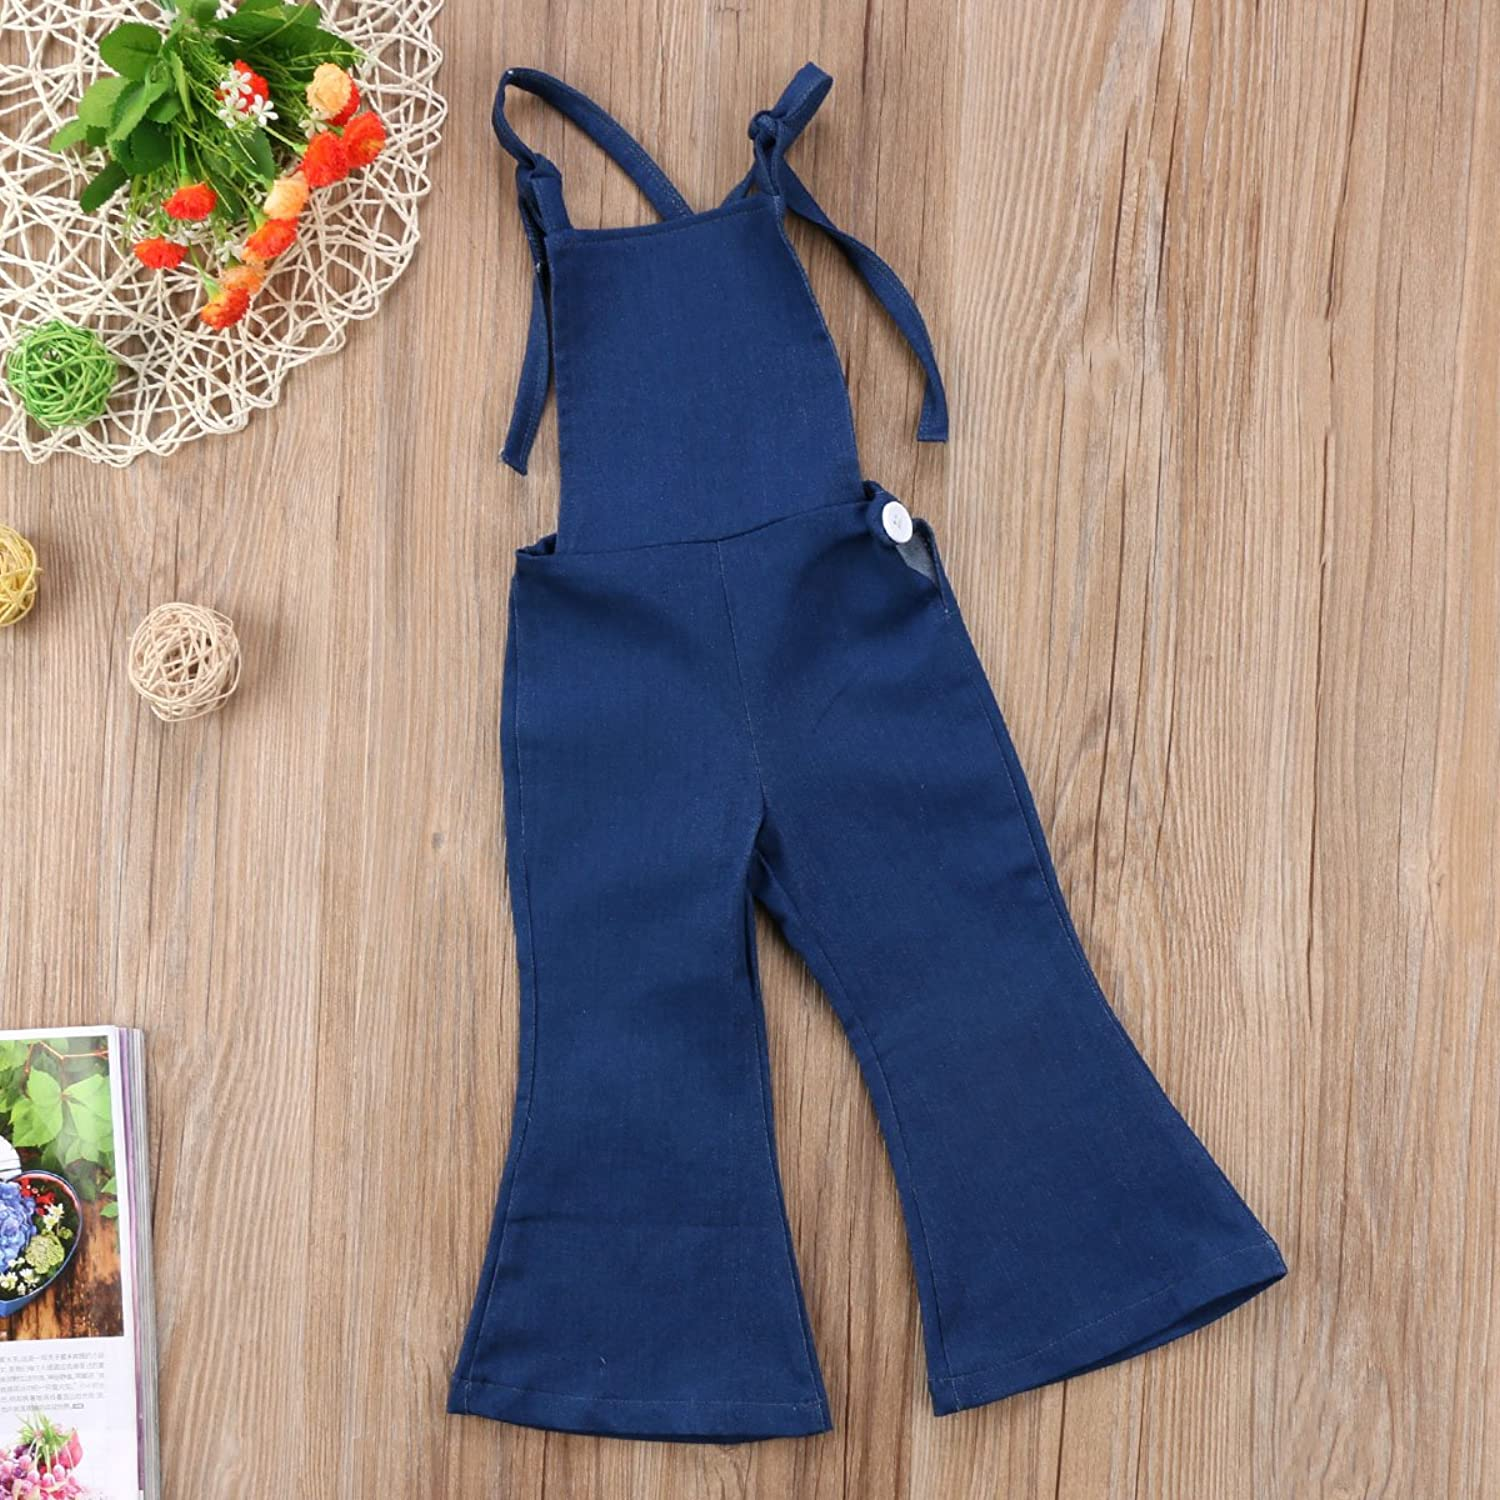 Kids 1950s Clothing & Costumes: Girls, Boys, Toddlers Pudcoco Baby Girls Little Kids Suspender Overall Flared Denim Jeans Jumpsuit Bell Elastic Blue Pants $11.99 AT vintagedancer.com